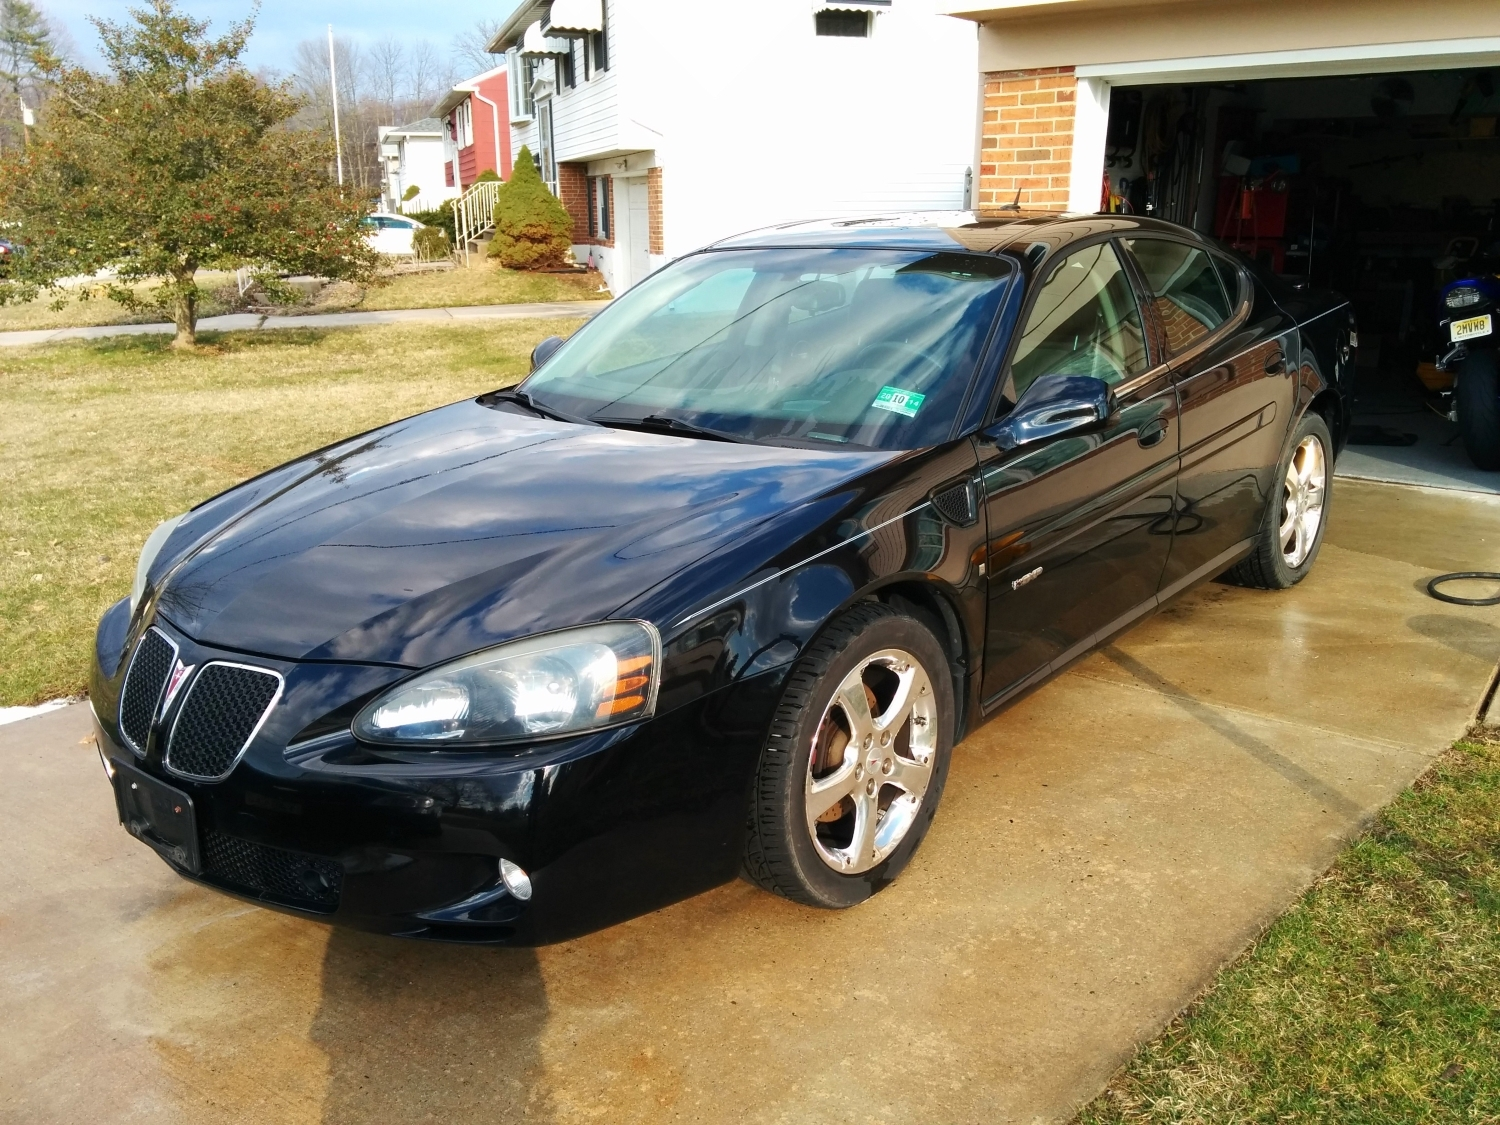 2007 pontiac grand prix gxp 1 4 mile drag racing timeslip specs 60 Black 1971 Grand Prix black 2007 pontiac grand prix gxp